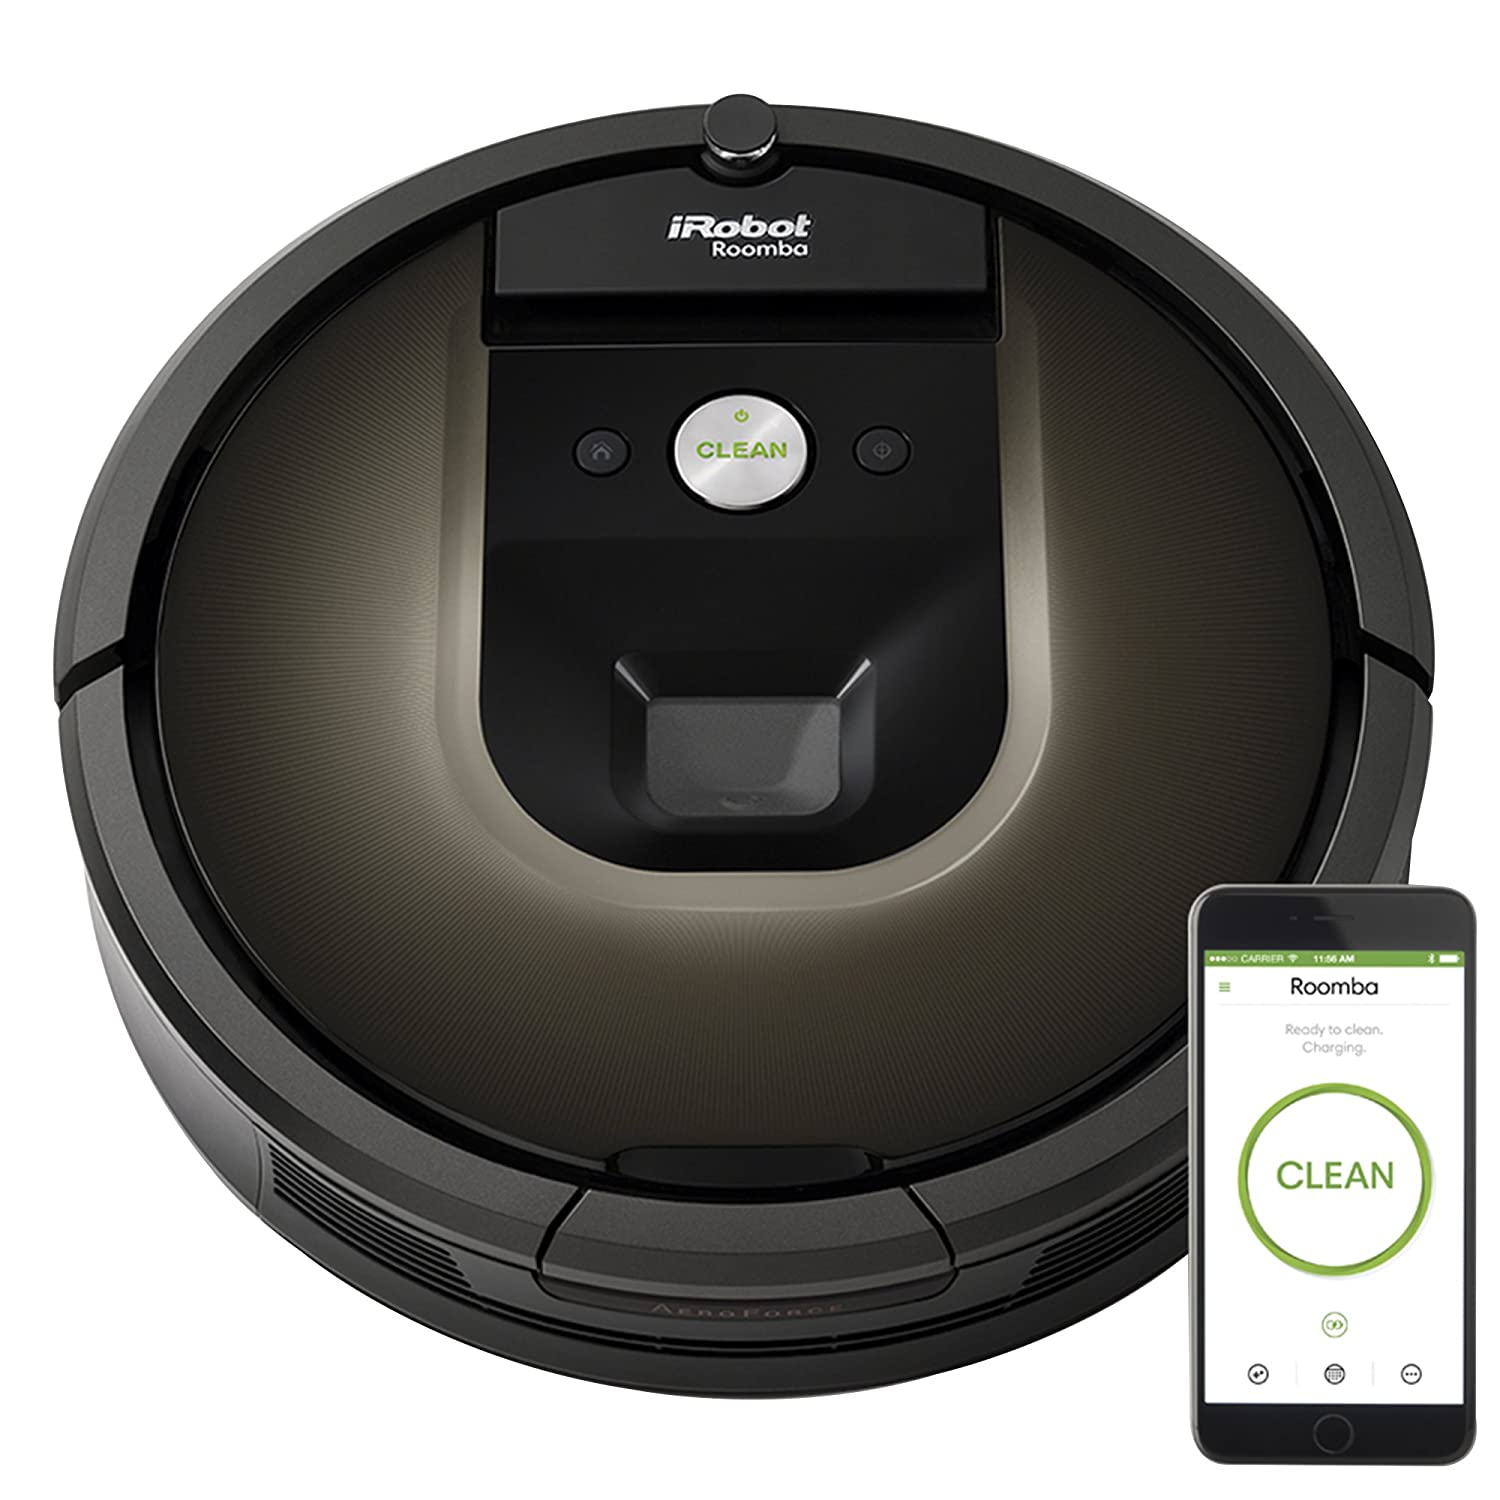 iRobot Roomba 980 Robotic Vacuum Cleaner – Best Robot Vacuum Cleaner for Carpets